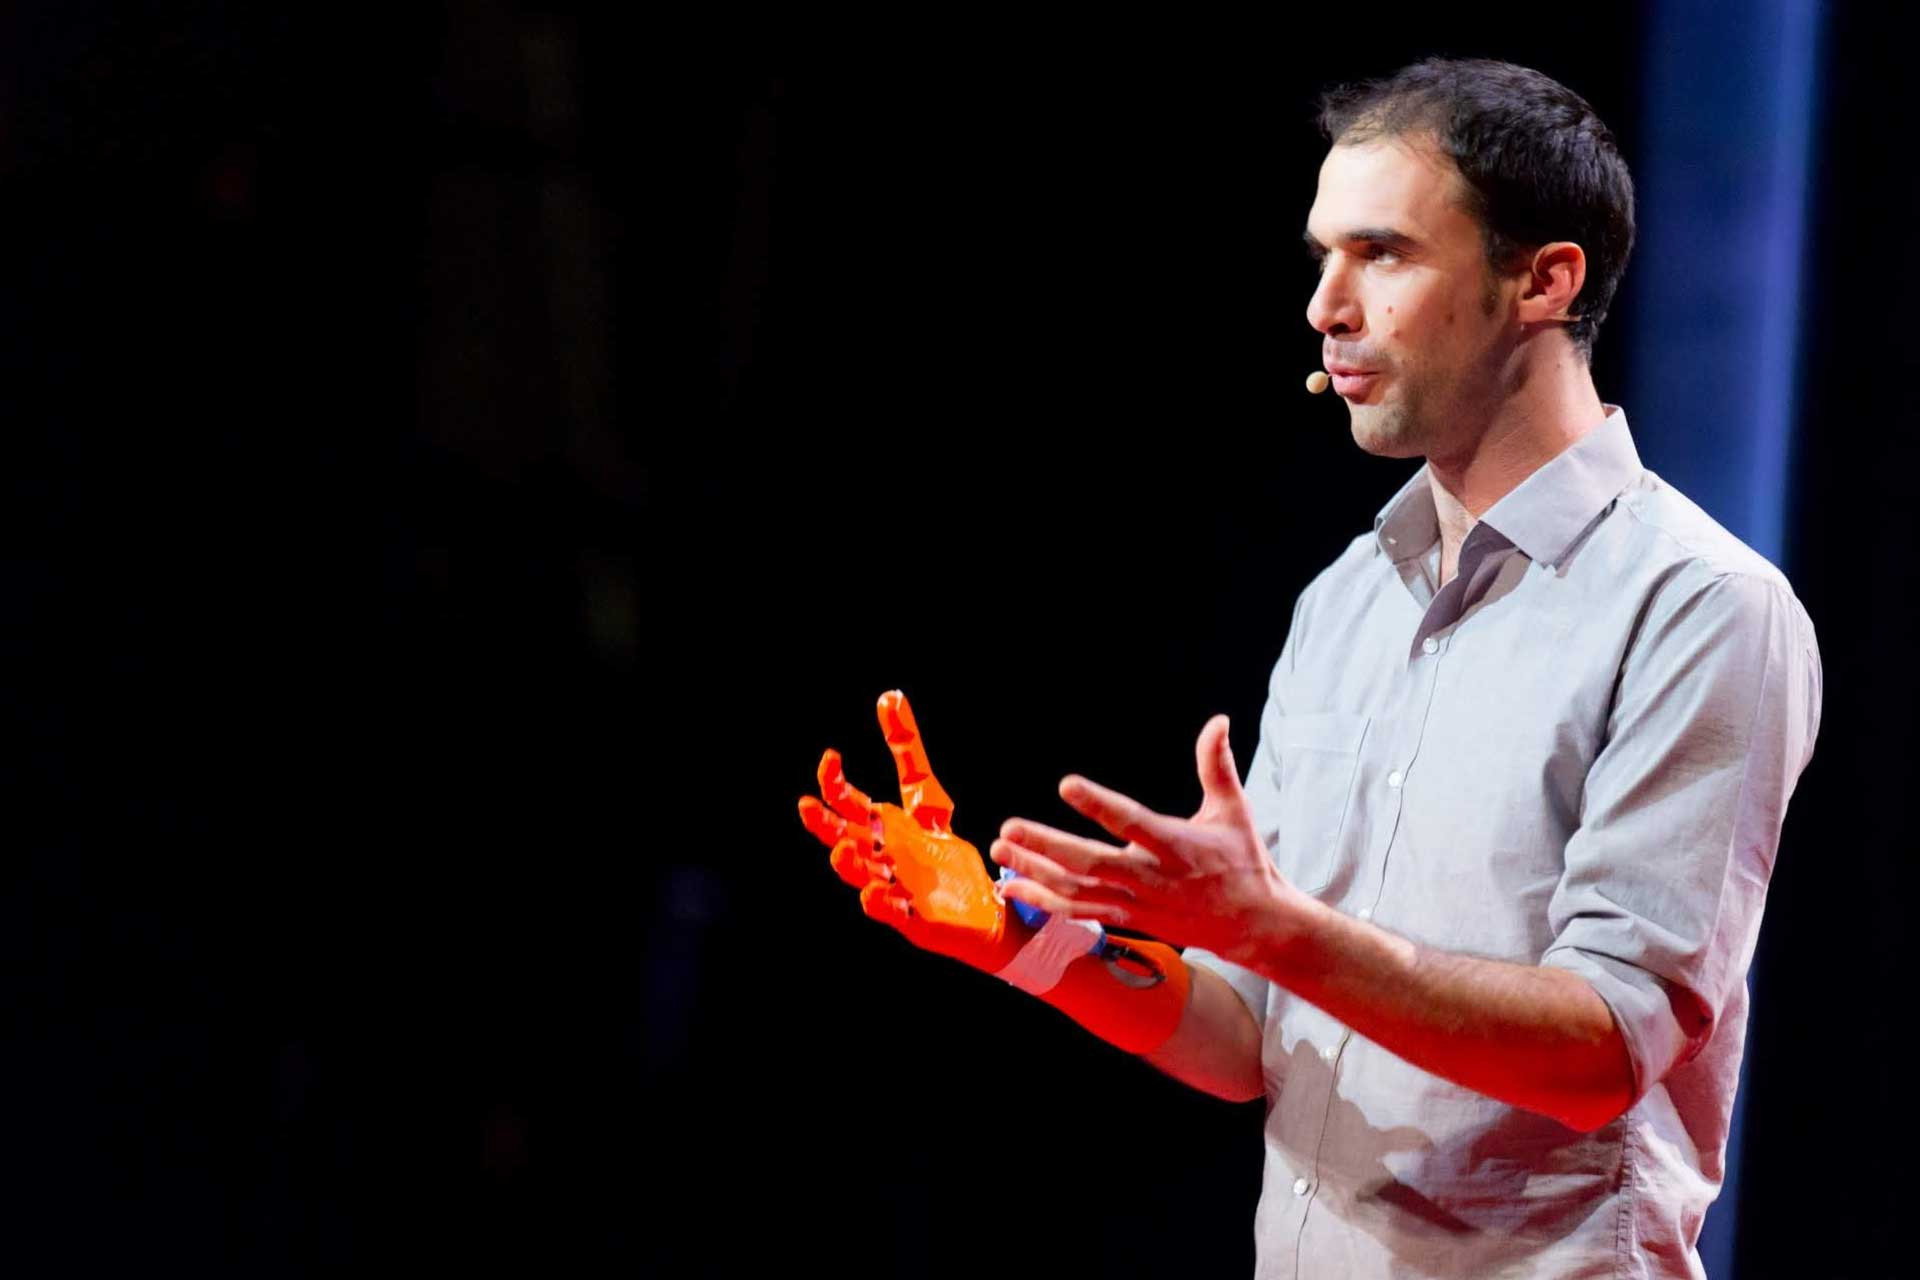 conference-TEDxParis-2015-4.jpg